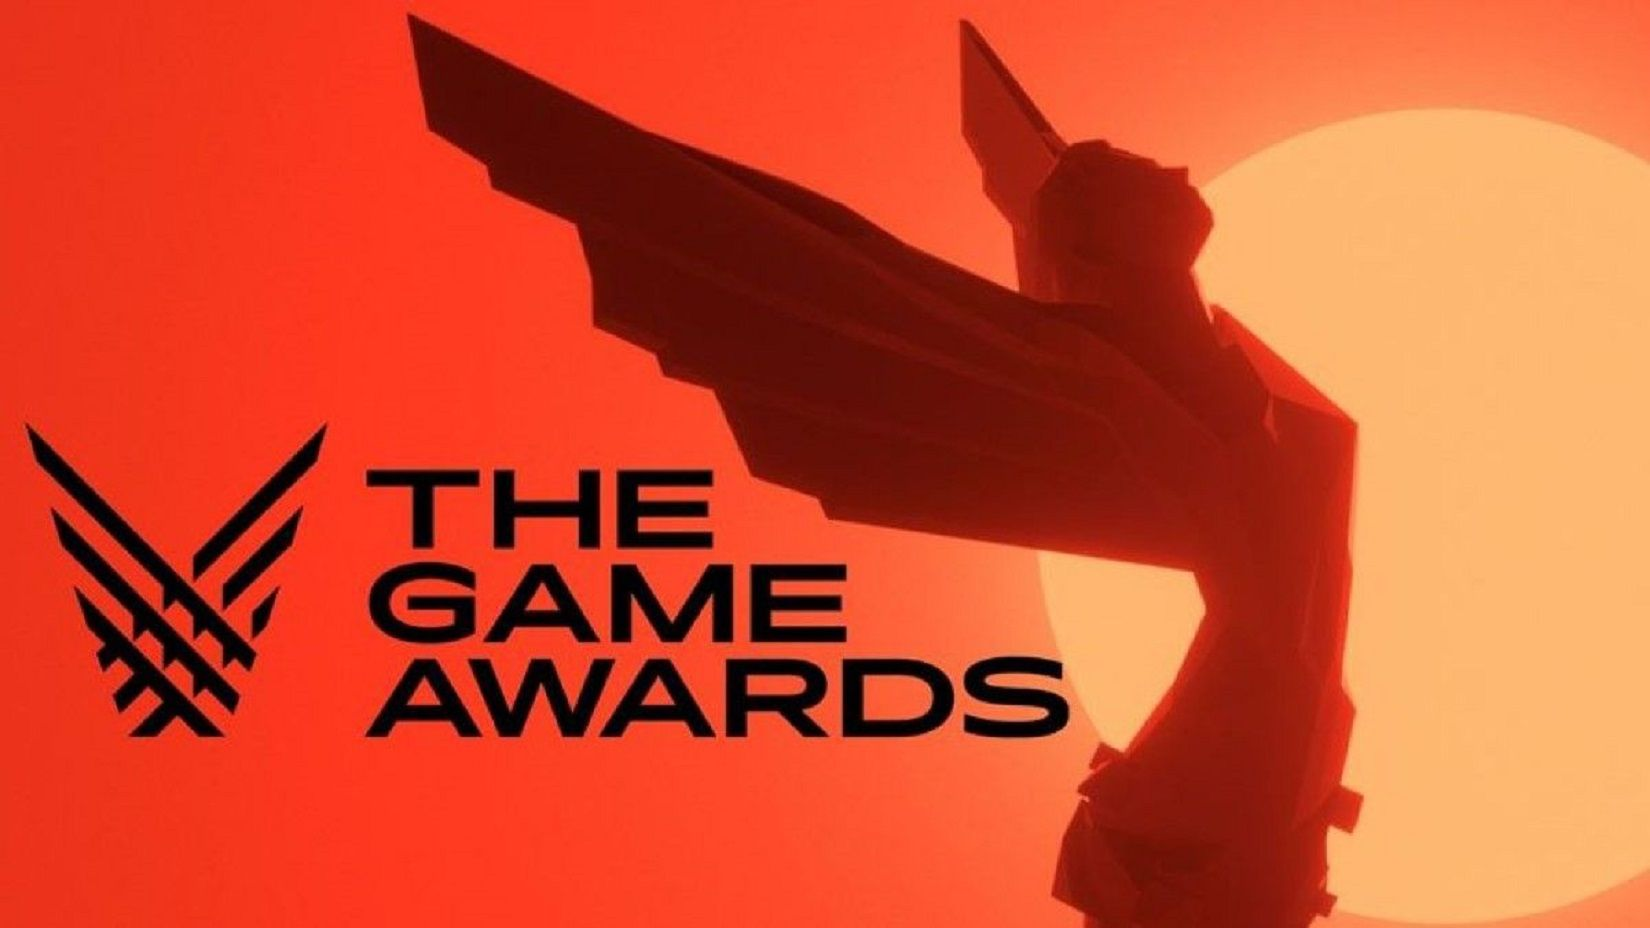 Watch The Game Awards 2020 stream when where schedule